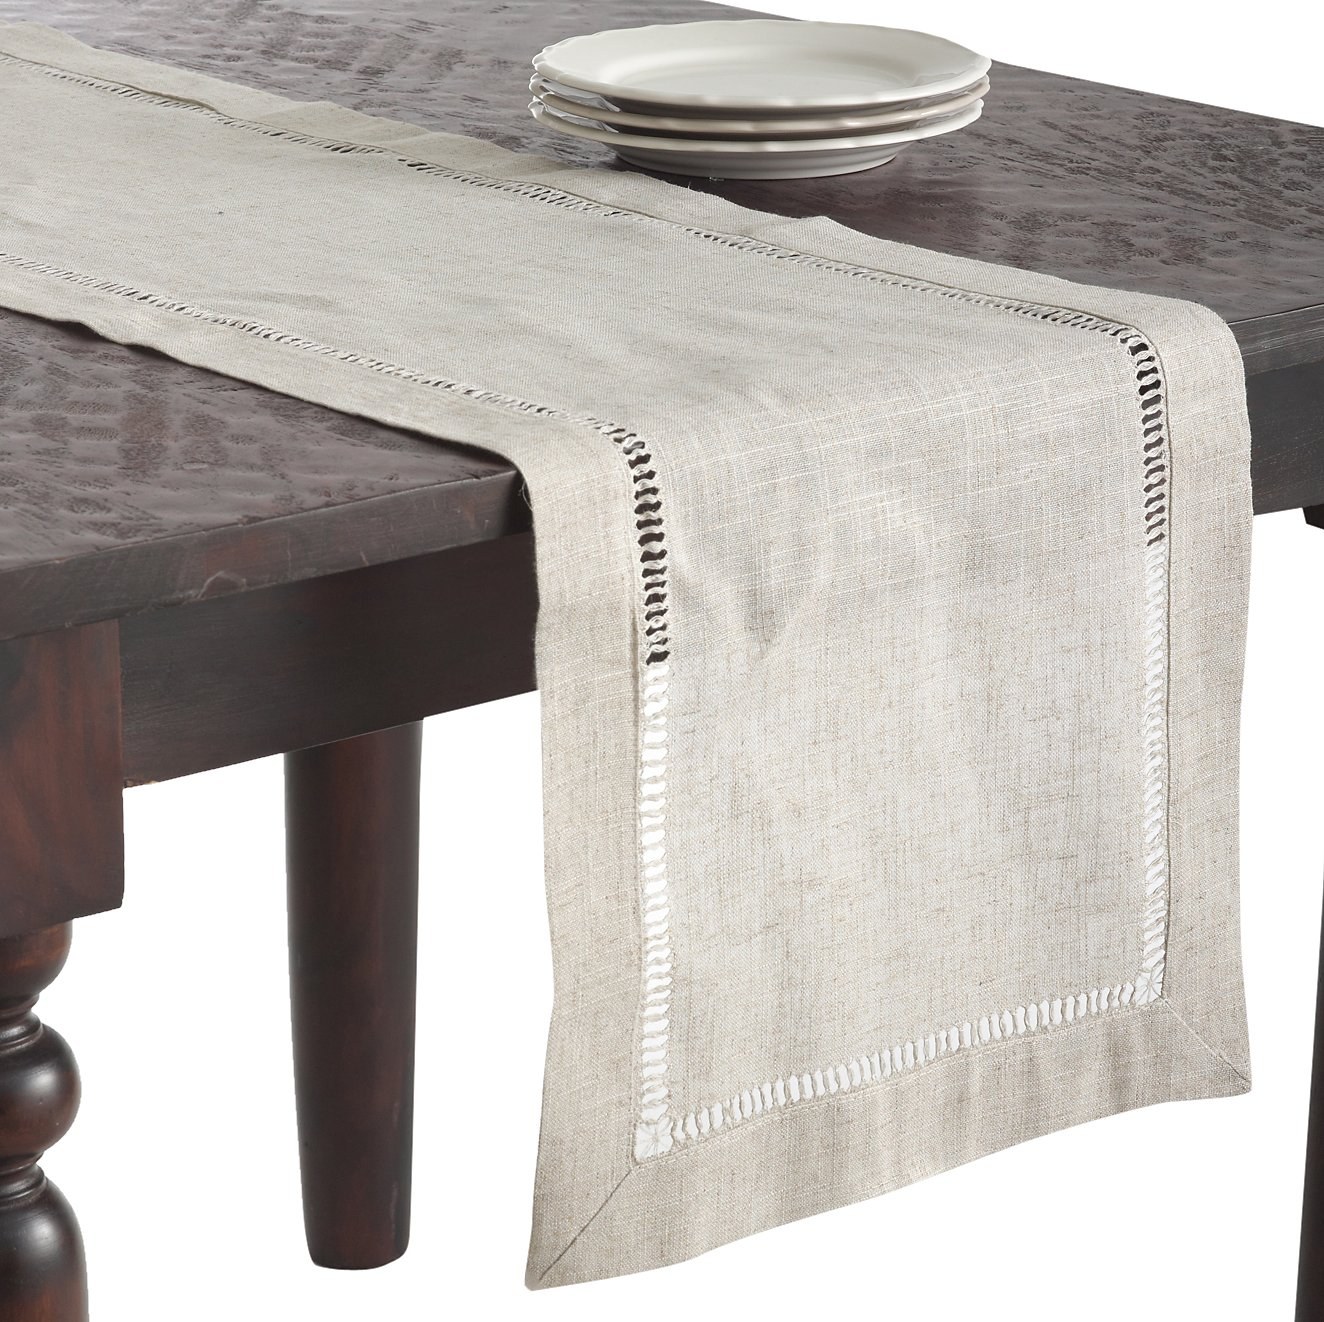 1 Piece SARO LIFESTYLE 731.N40S Toscana Square Tablecloth 40 Natural 40